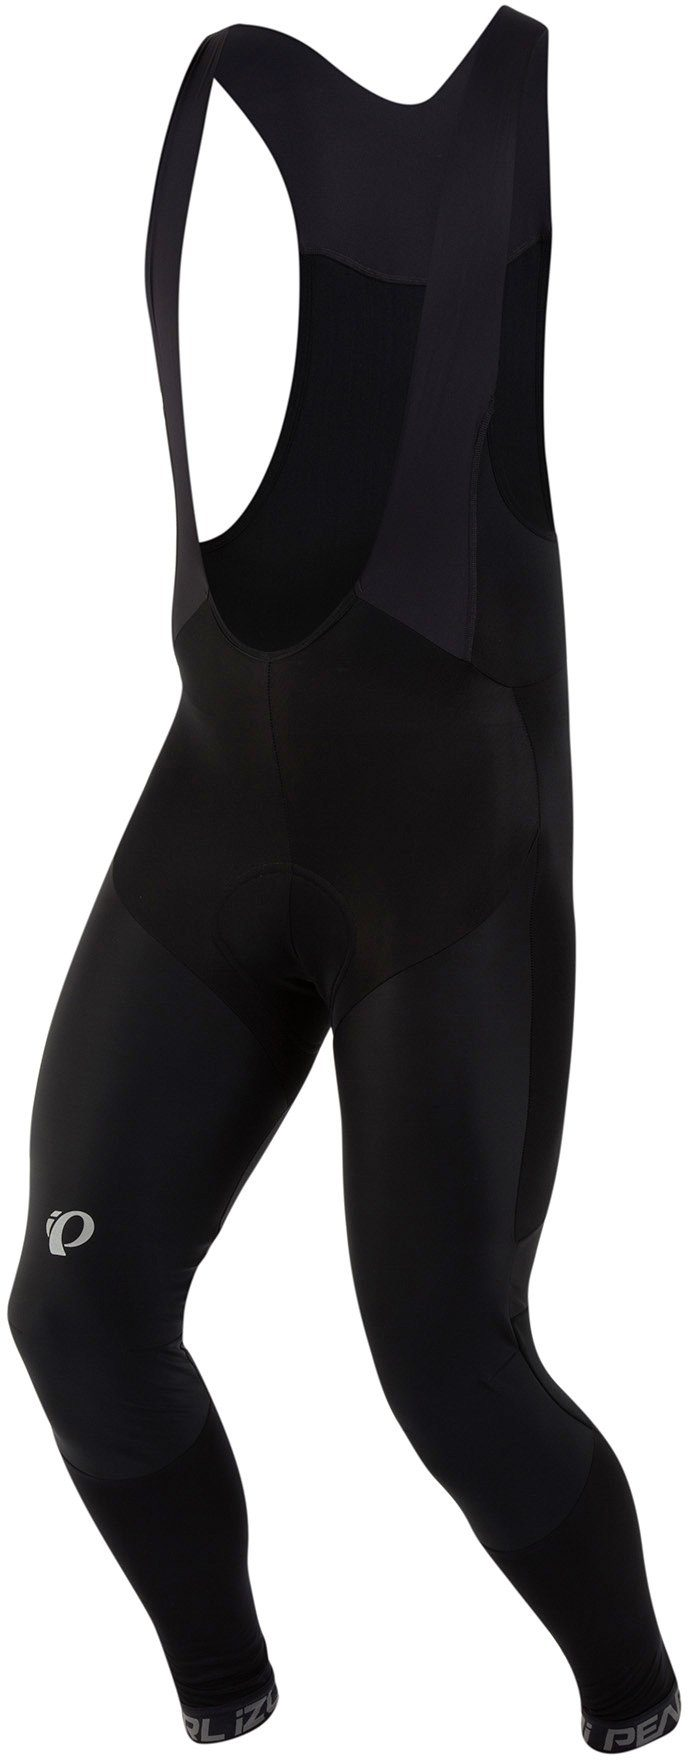 Pearl Izumi Radhose »Pro Pursuit Cycling Bib Tight Men«